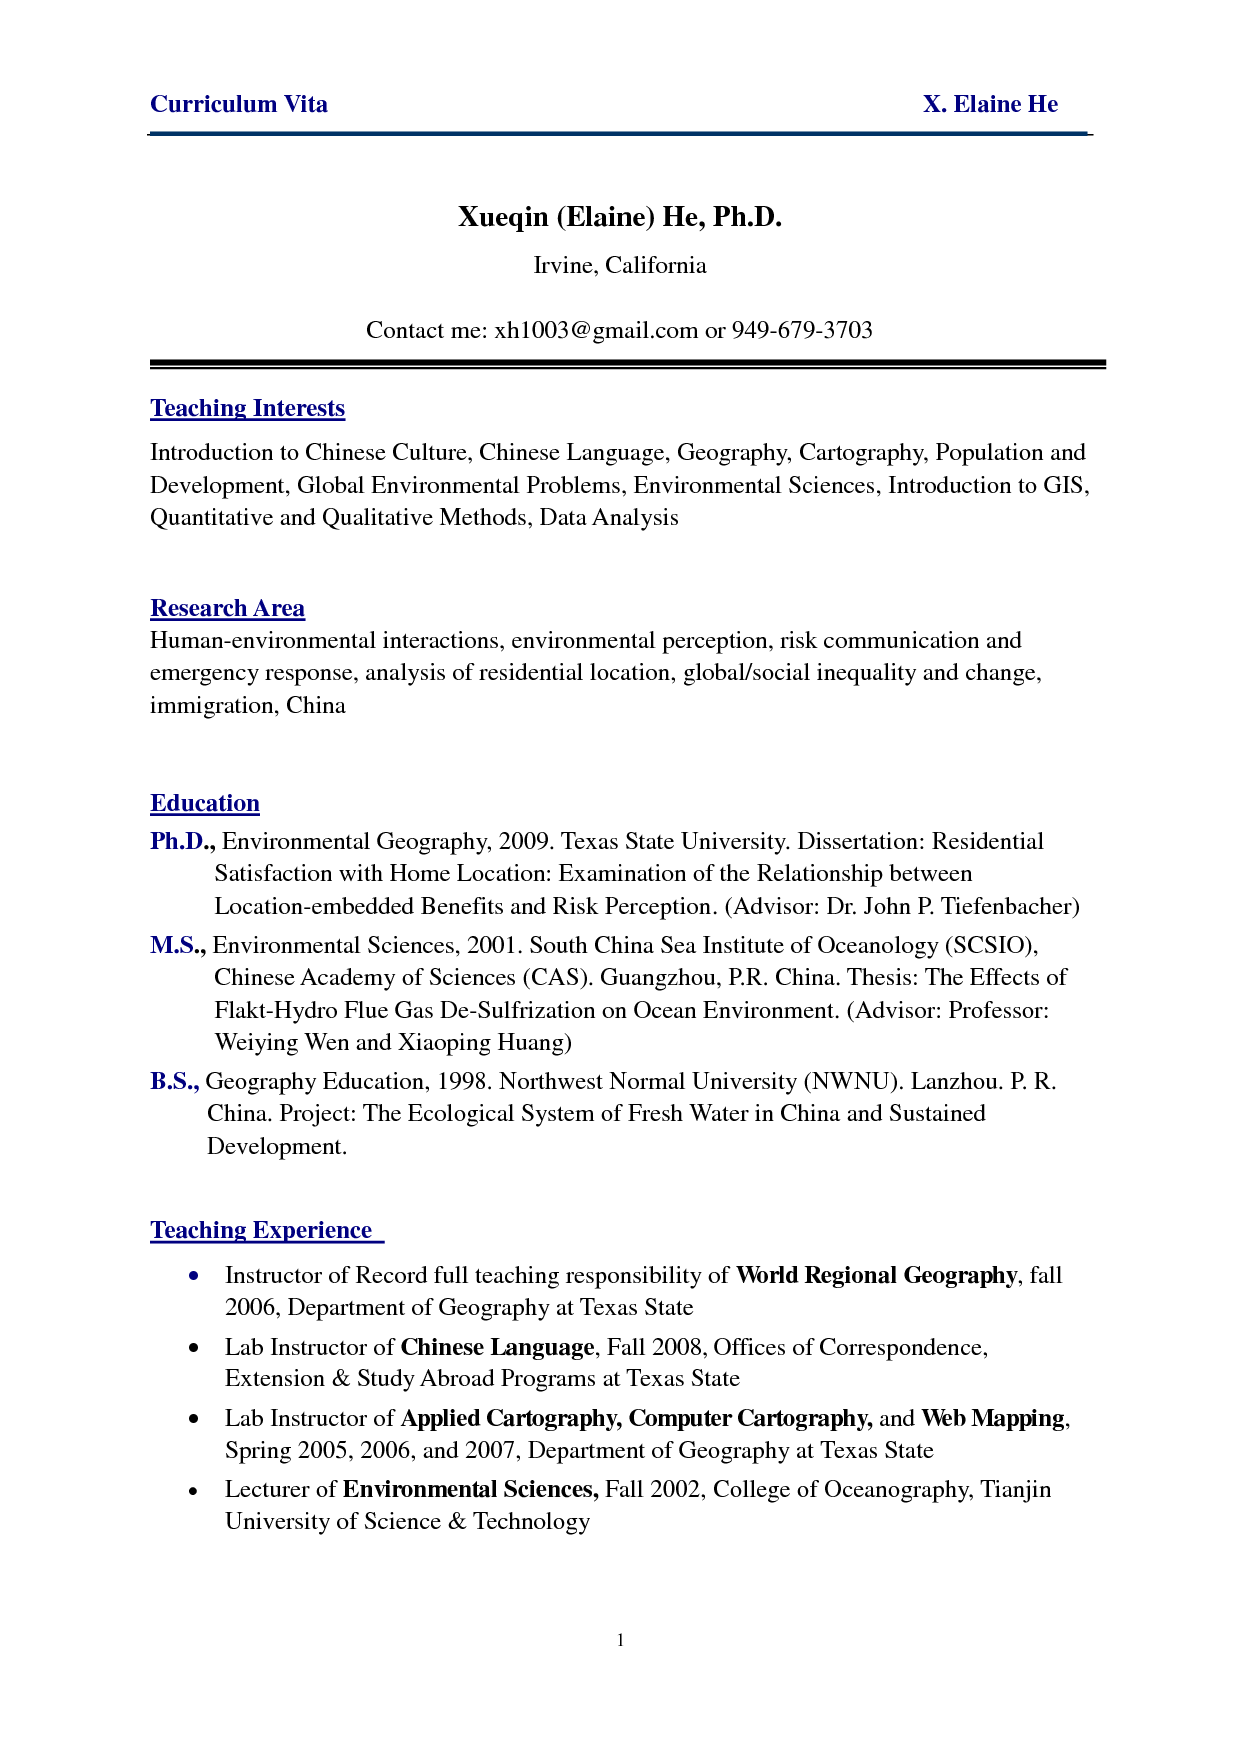 Sample Of Resumes Best New Grad Lpn Resume Sample  Nursing Hacked  Pinterest  Interiors Decorating Design